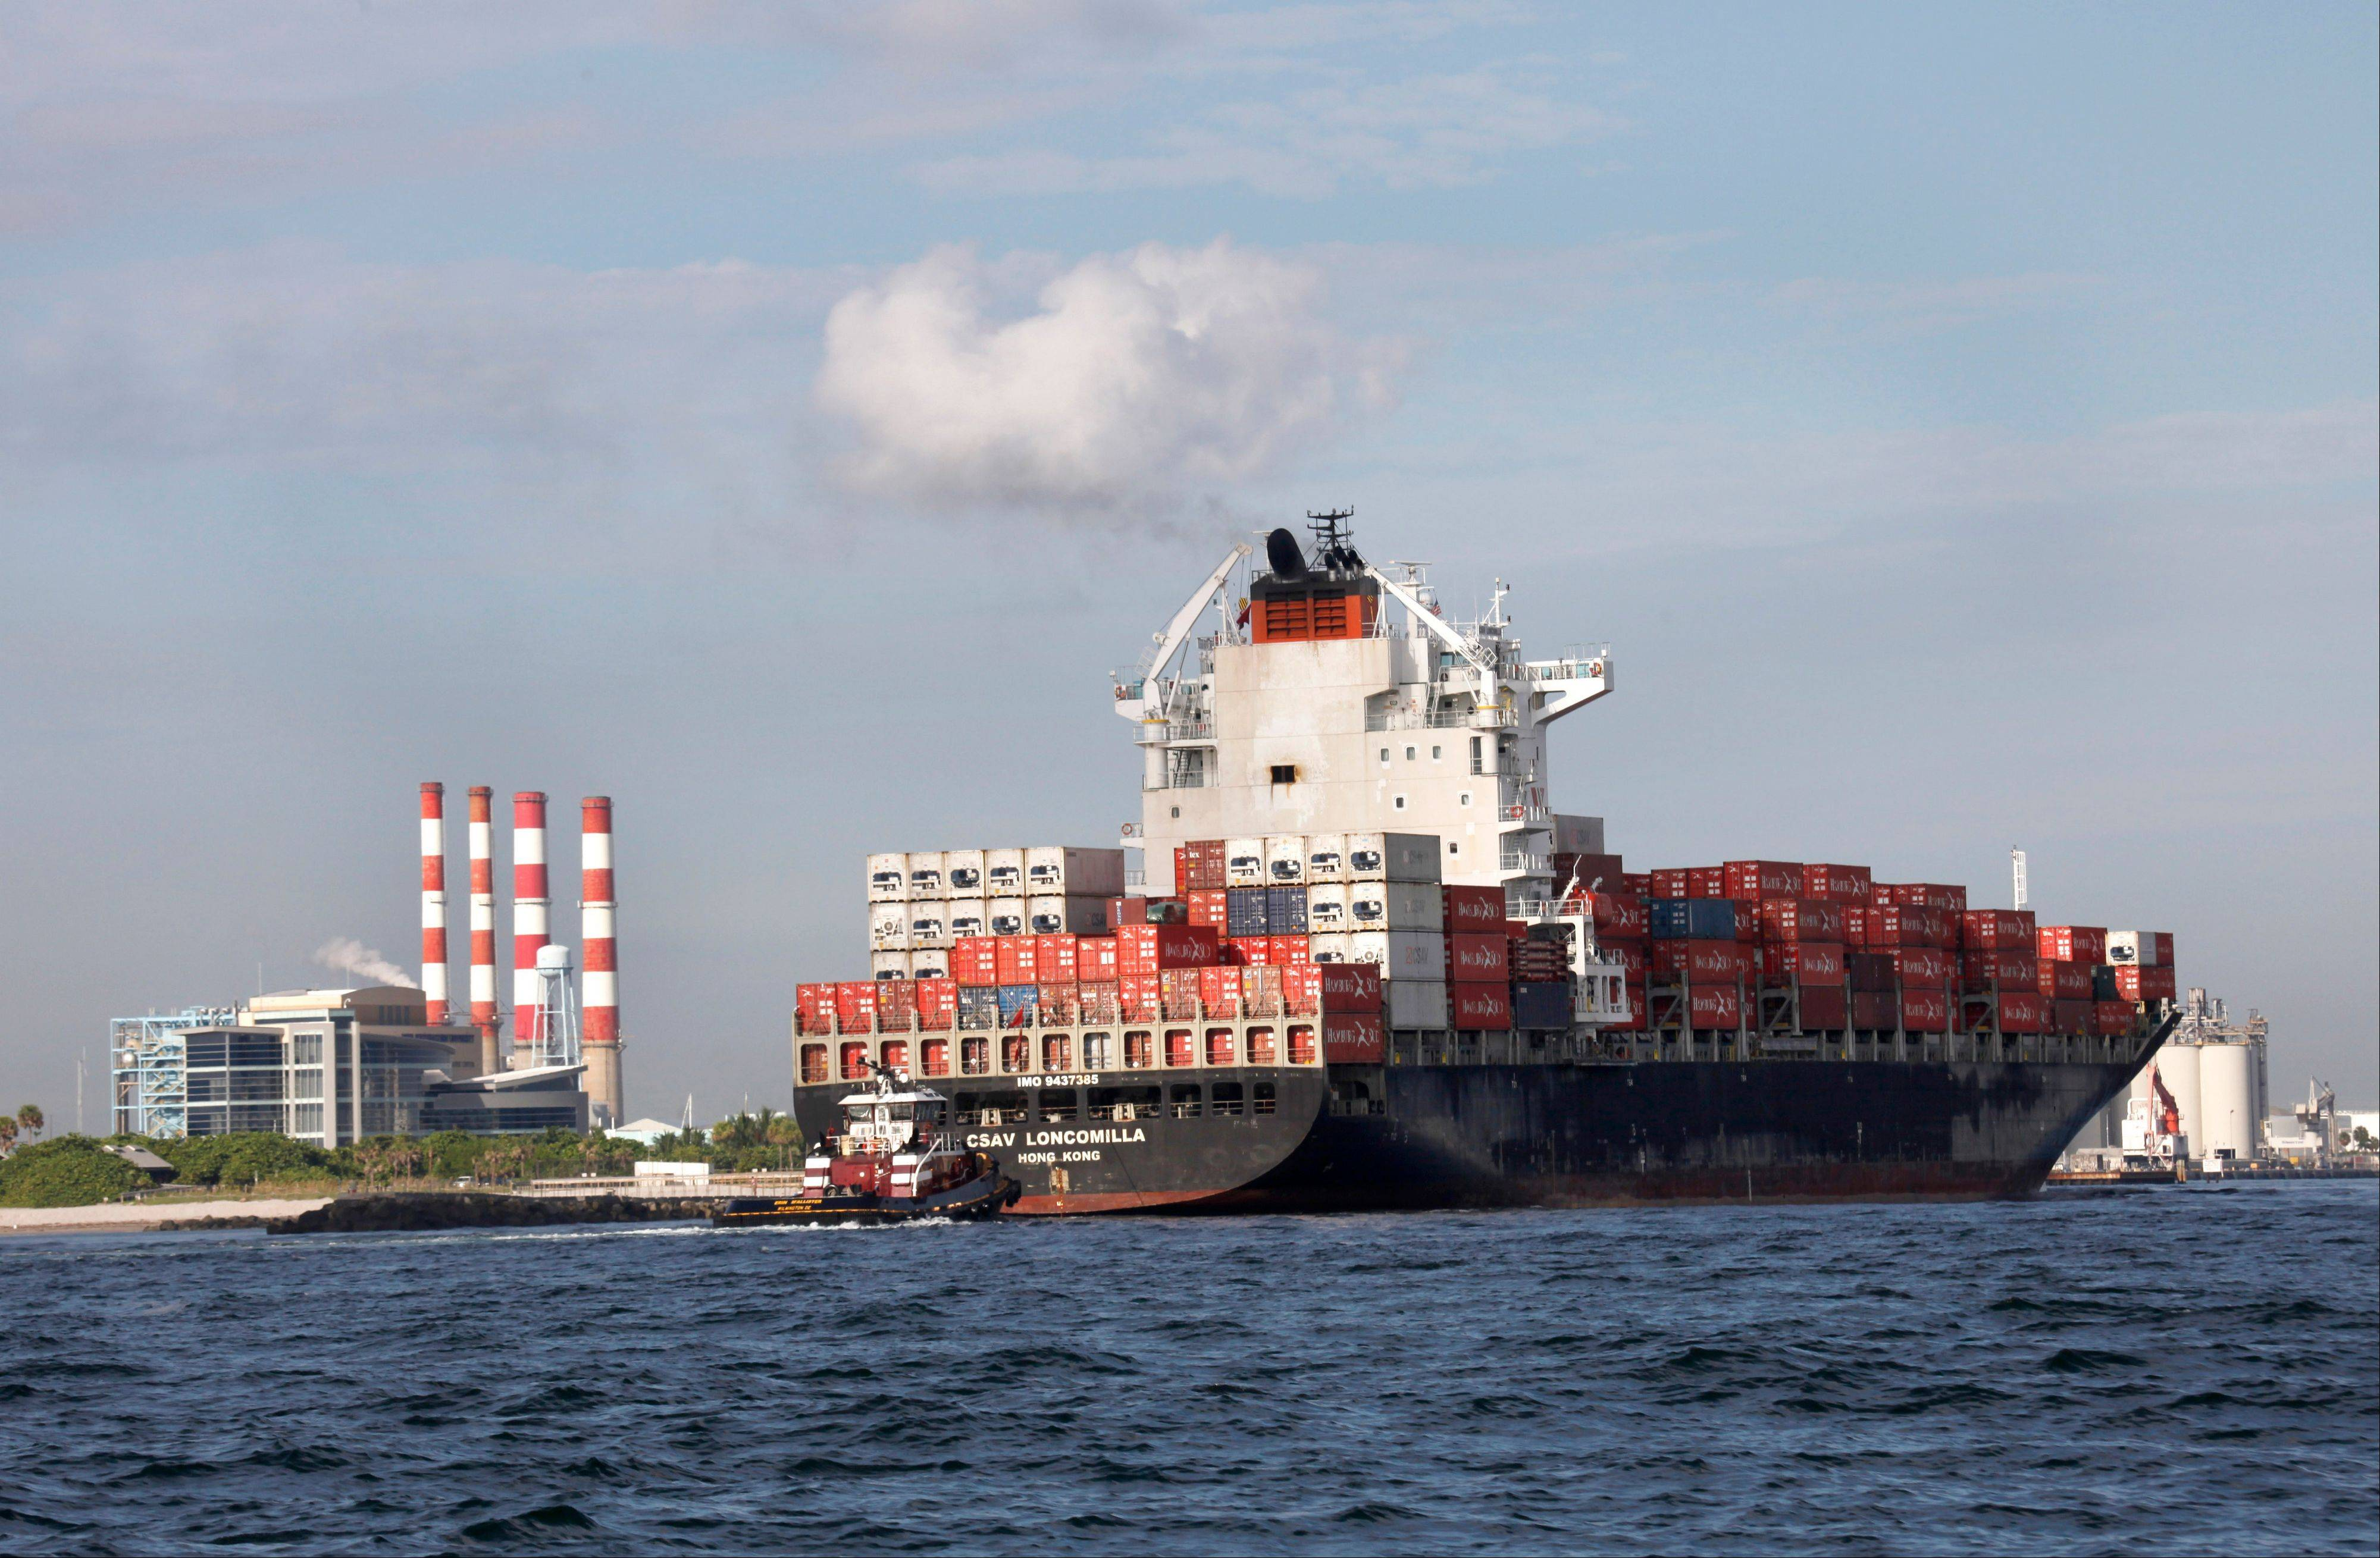 Associated Press/Sept. 27, 2012 A container ship passes the Florida Power & Light Port Everglades Plant on its way to unload its cargo at Port Everglades in Fort Lauderdale, Fla.